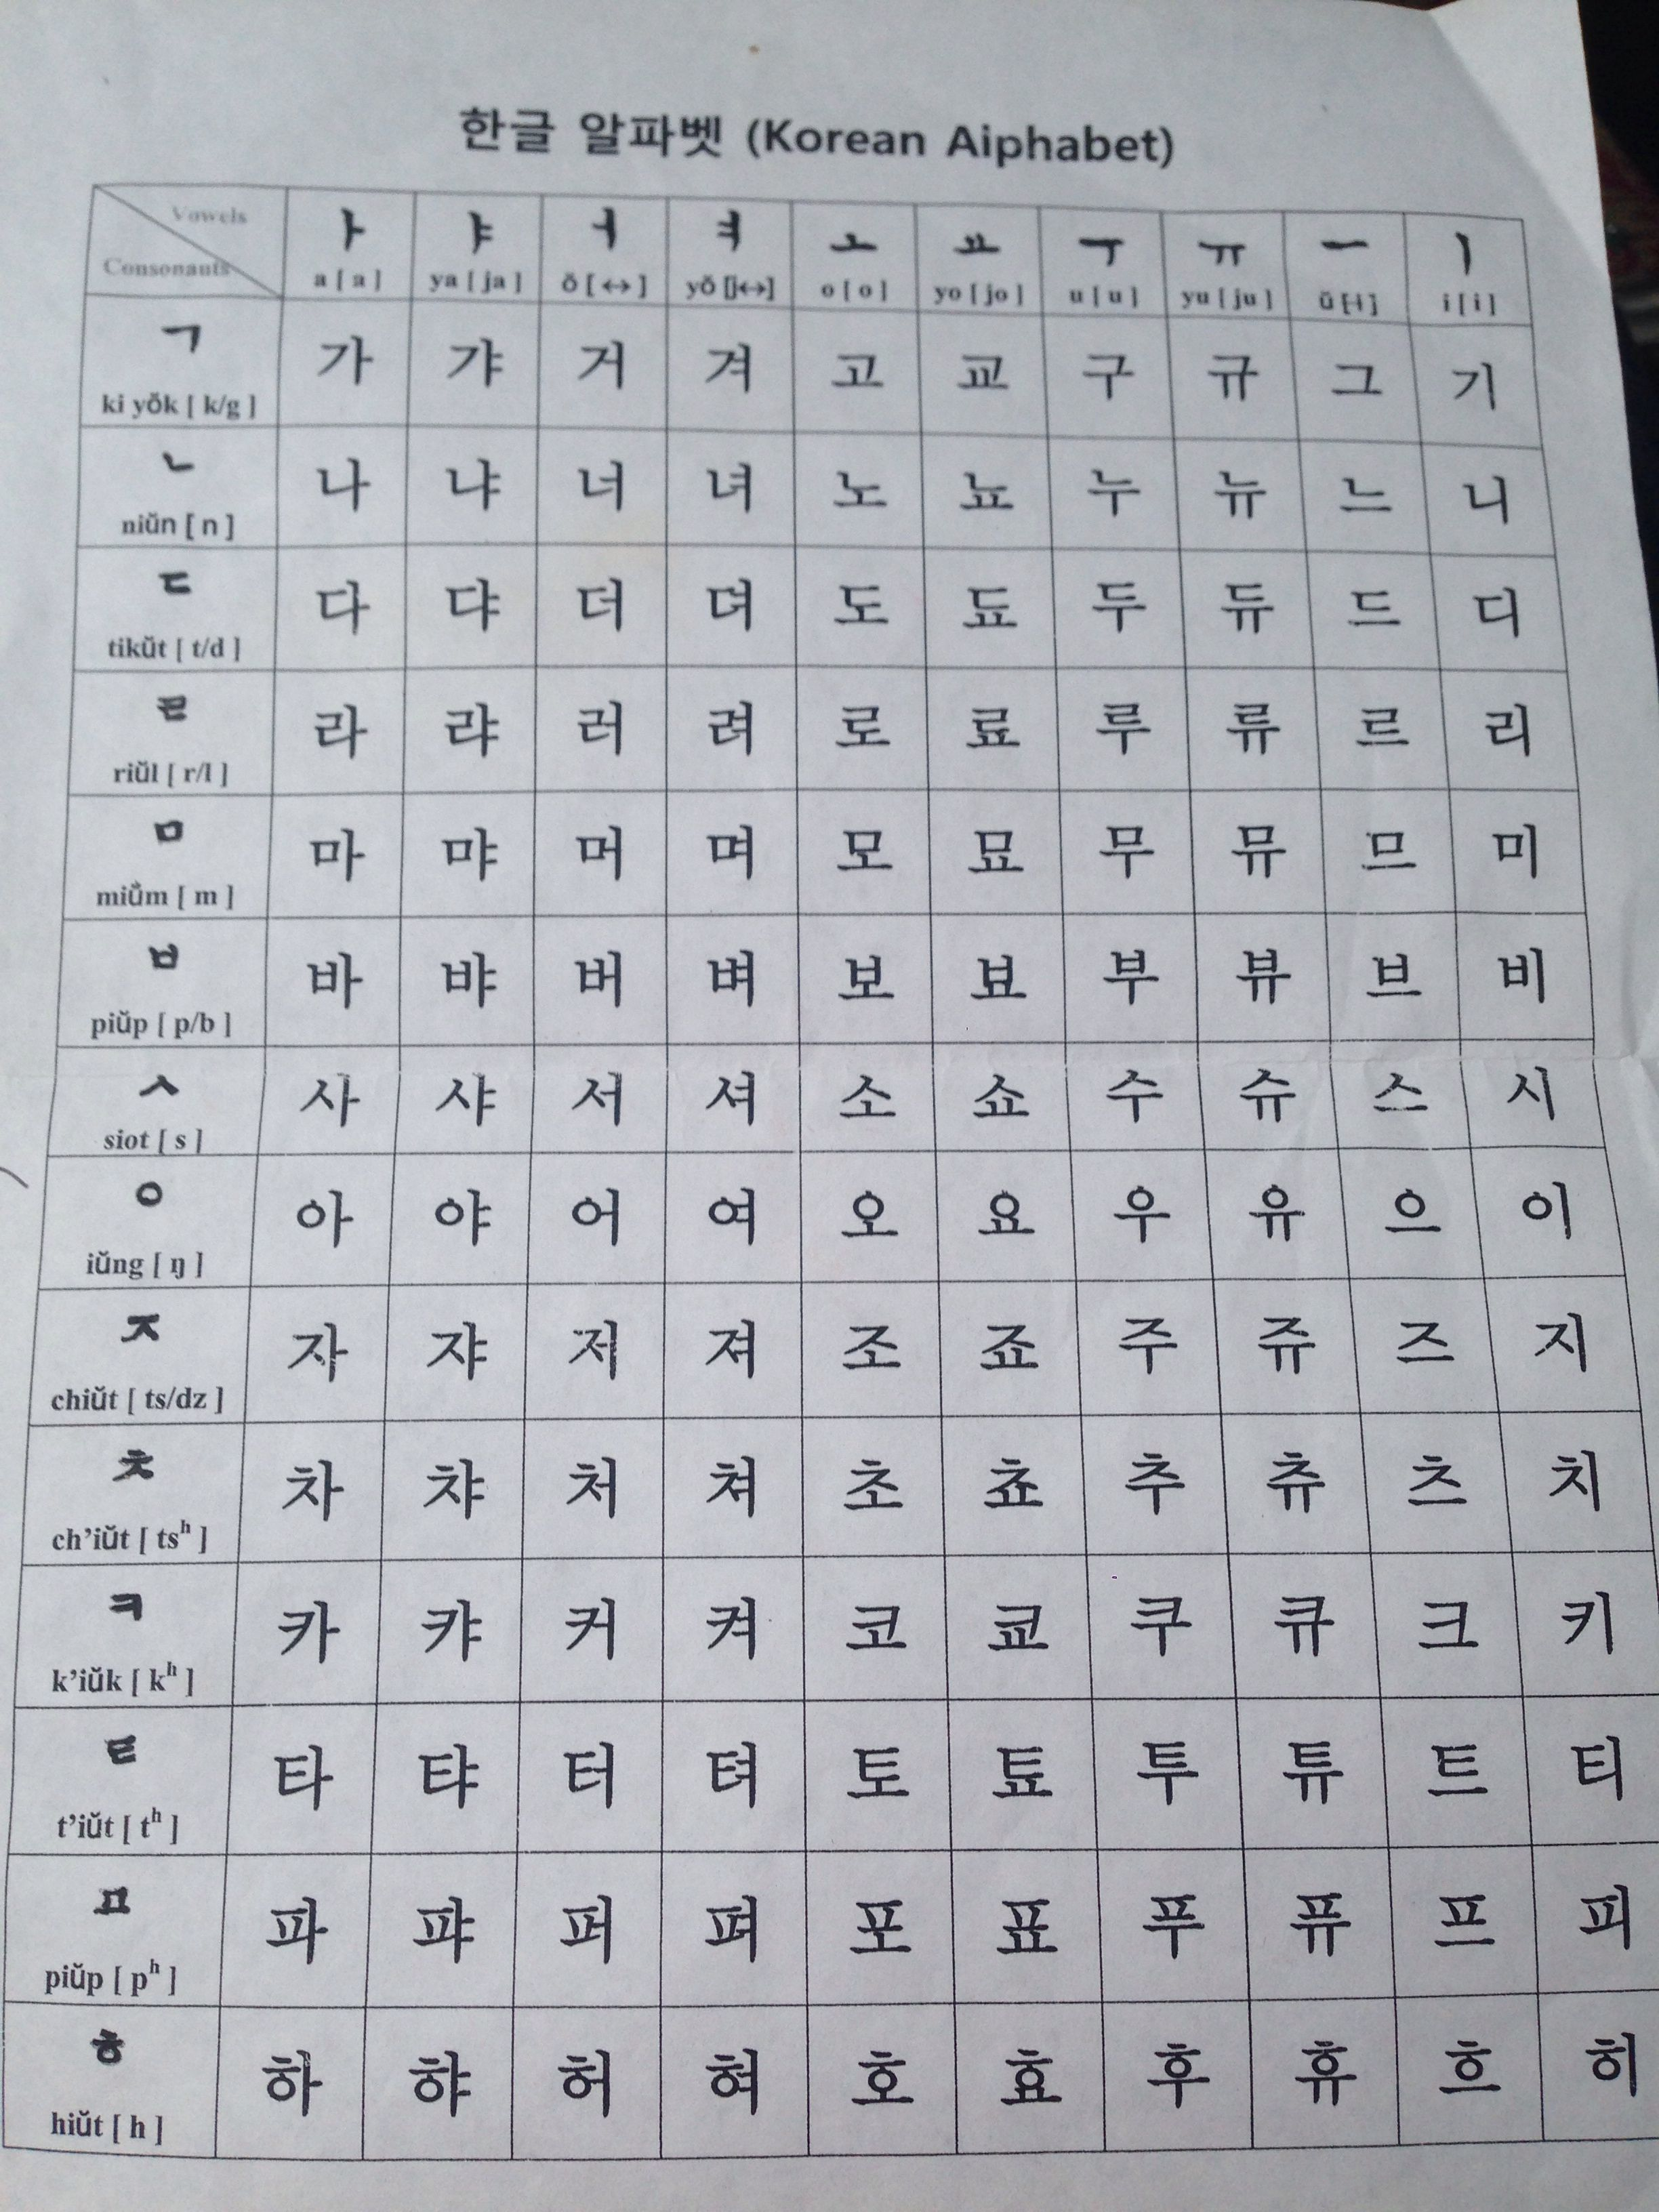 The Korean Alphabet